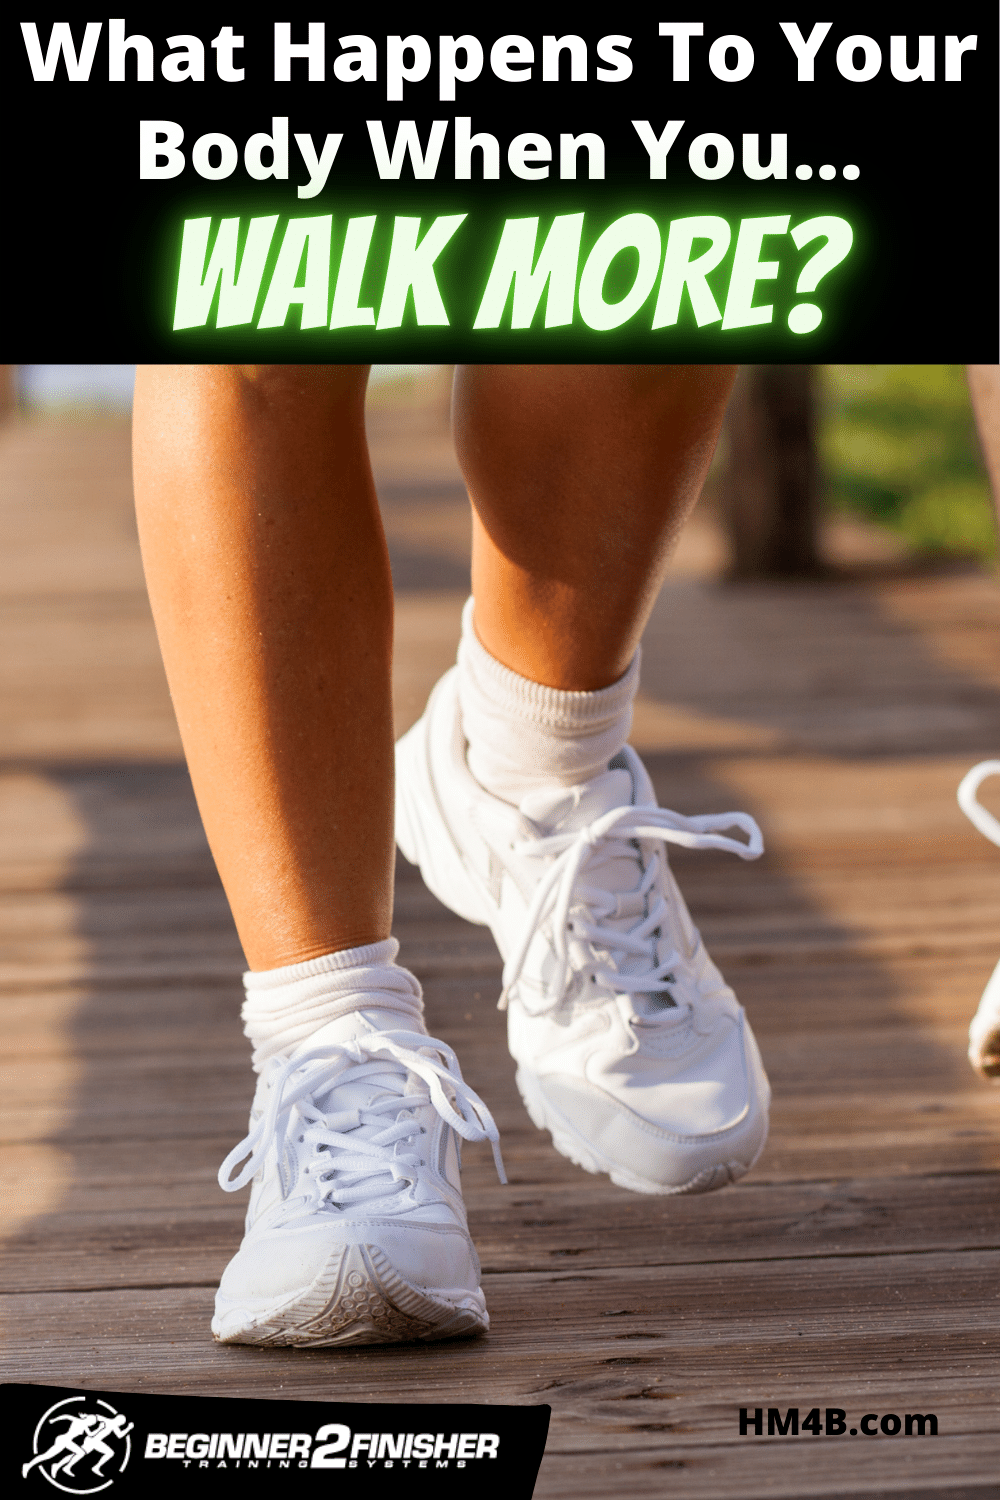 What Happens To Your Body When You Walk More?